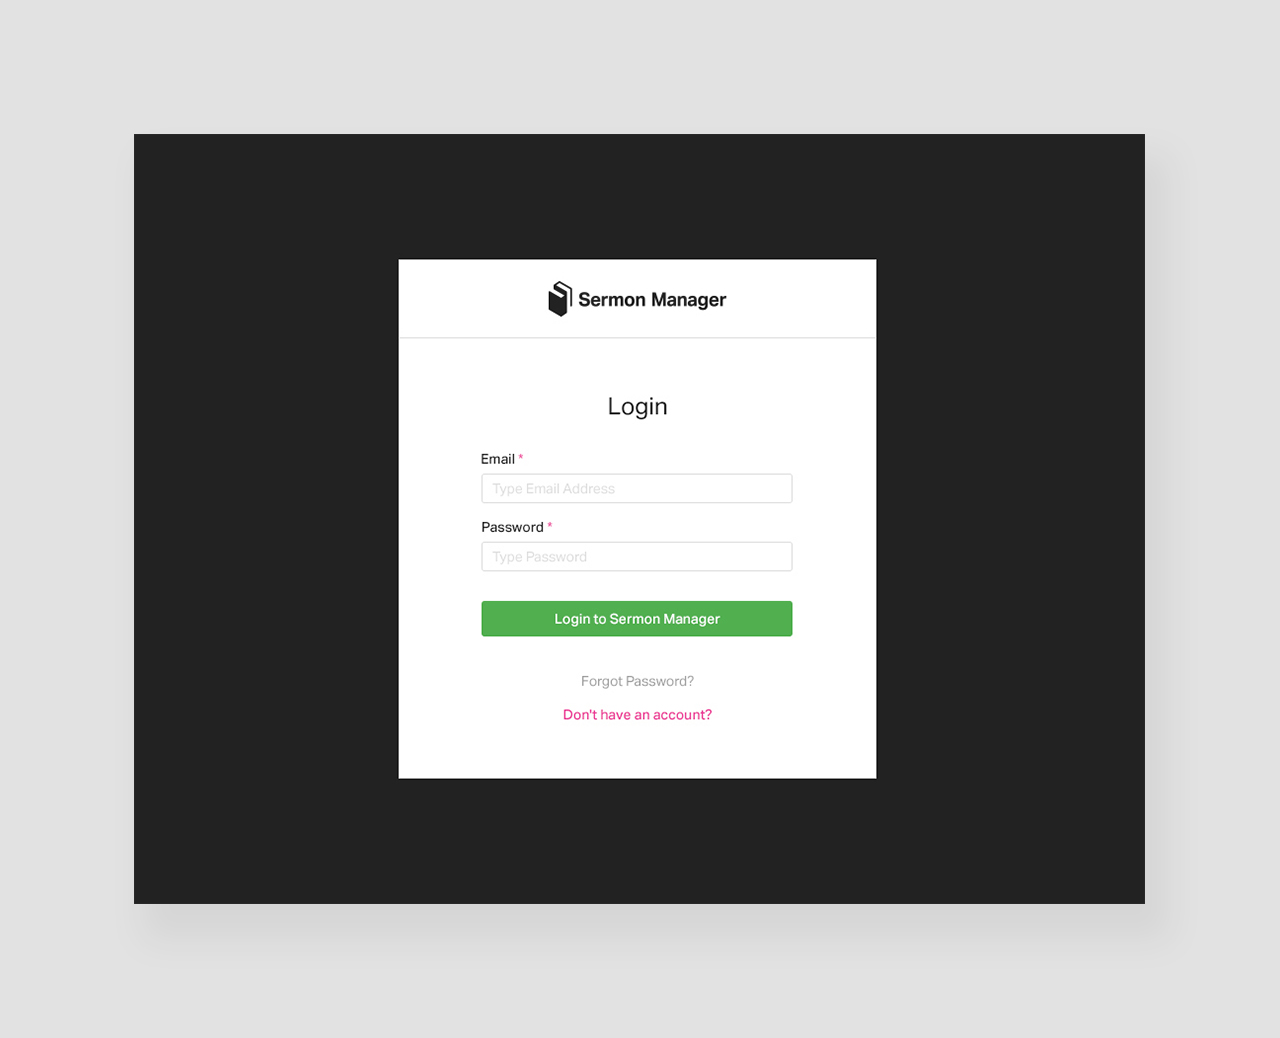 sermonmanager-mockup-login